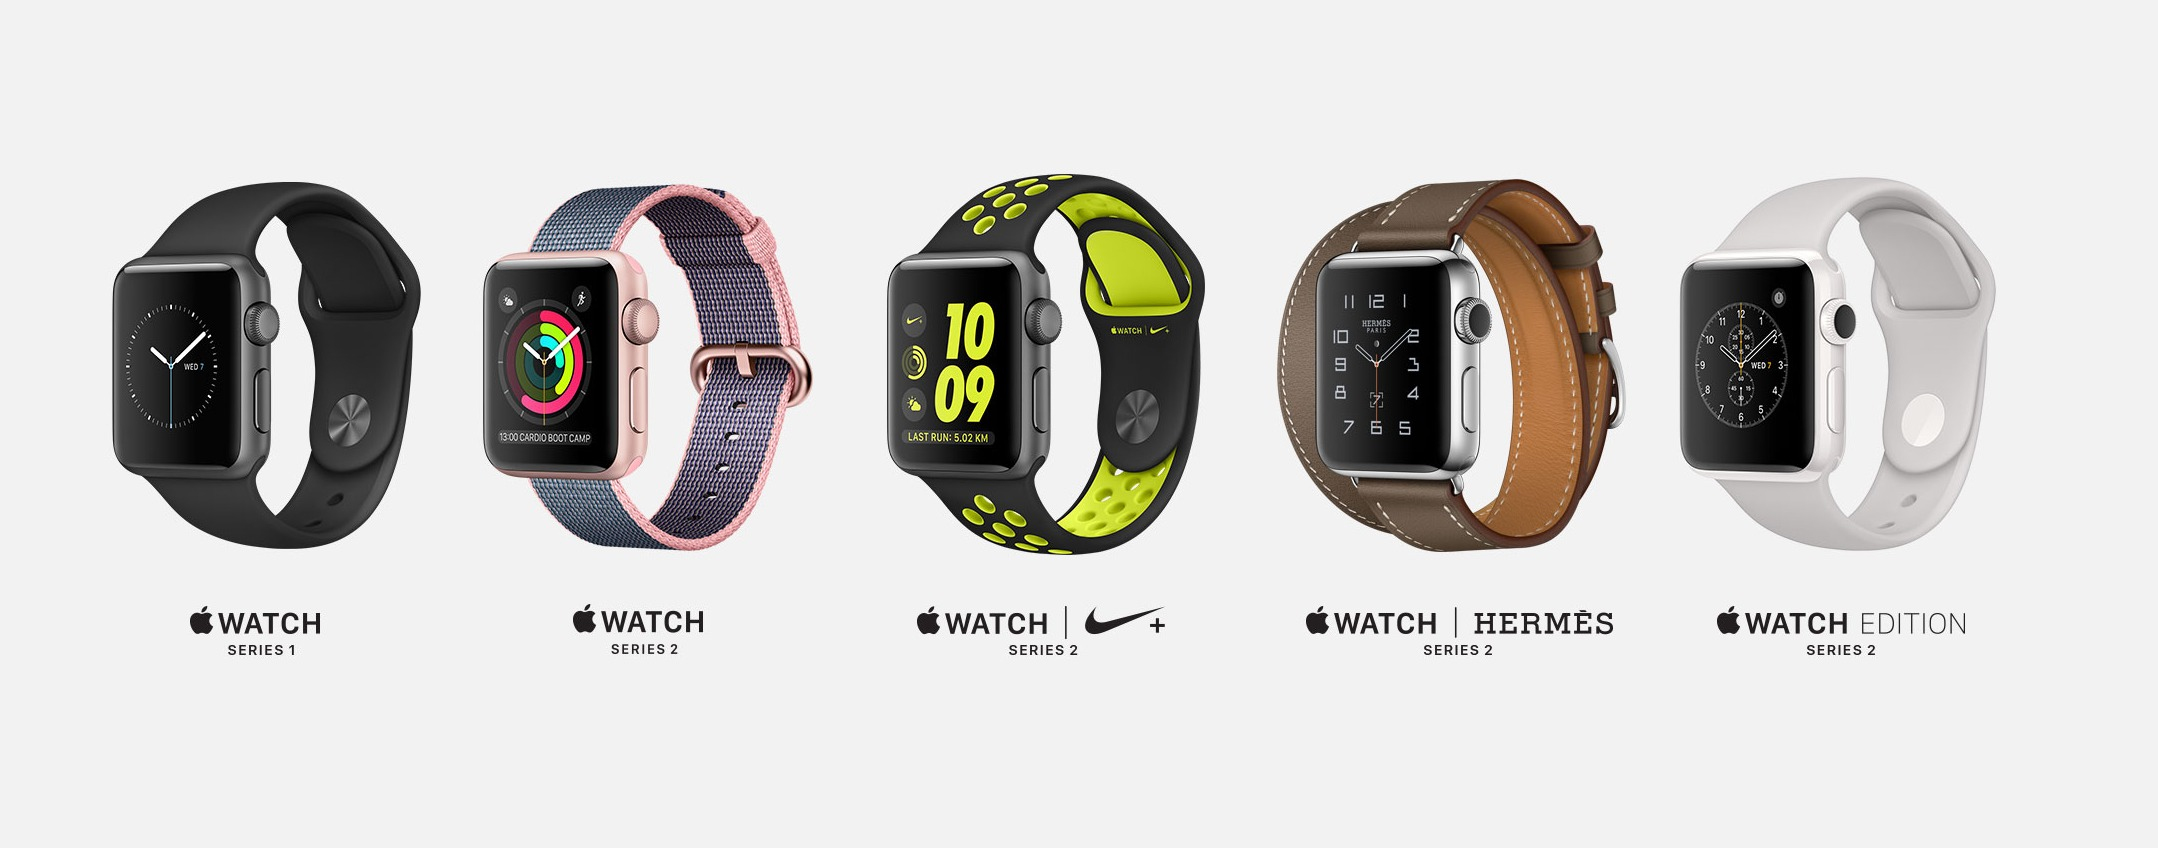 Watchos 3 major update now available - Watchos 3 Now Available For Apple Watch Users